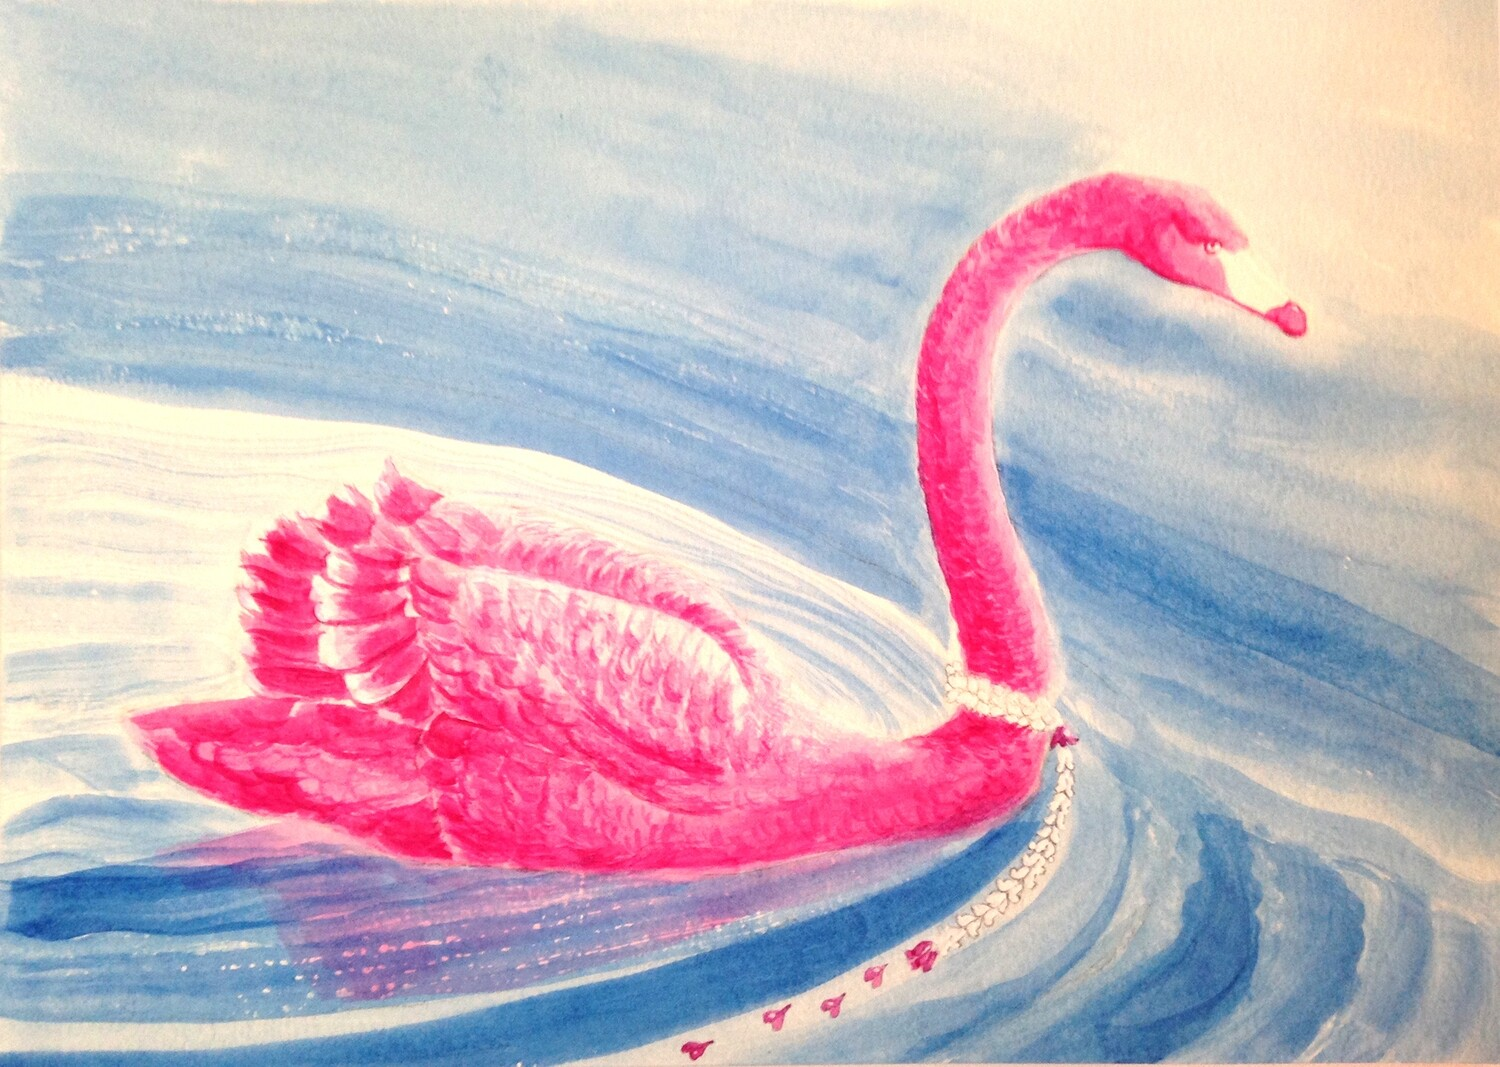 'Pink Swan Gala Event' from the watercolour series 'Pink Swan Event'.